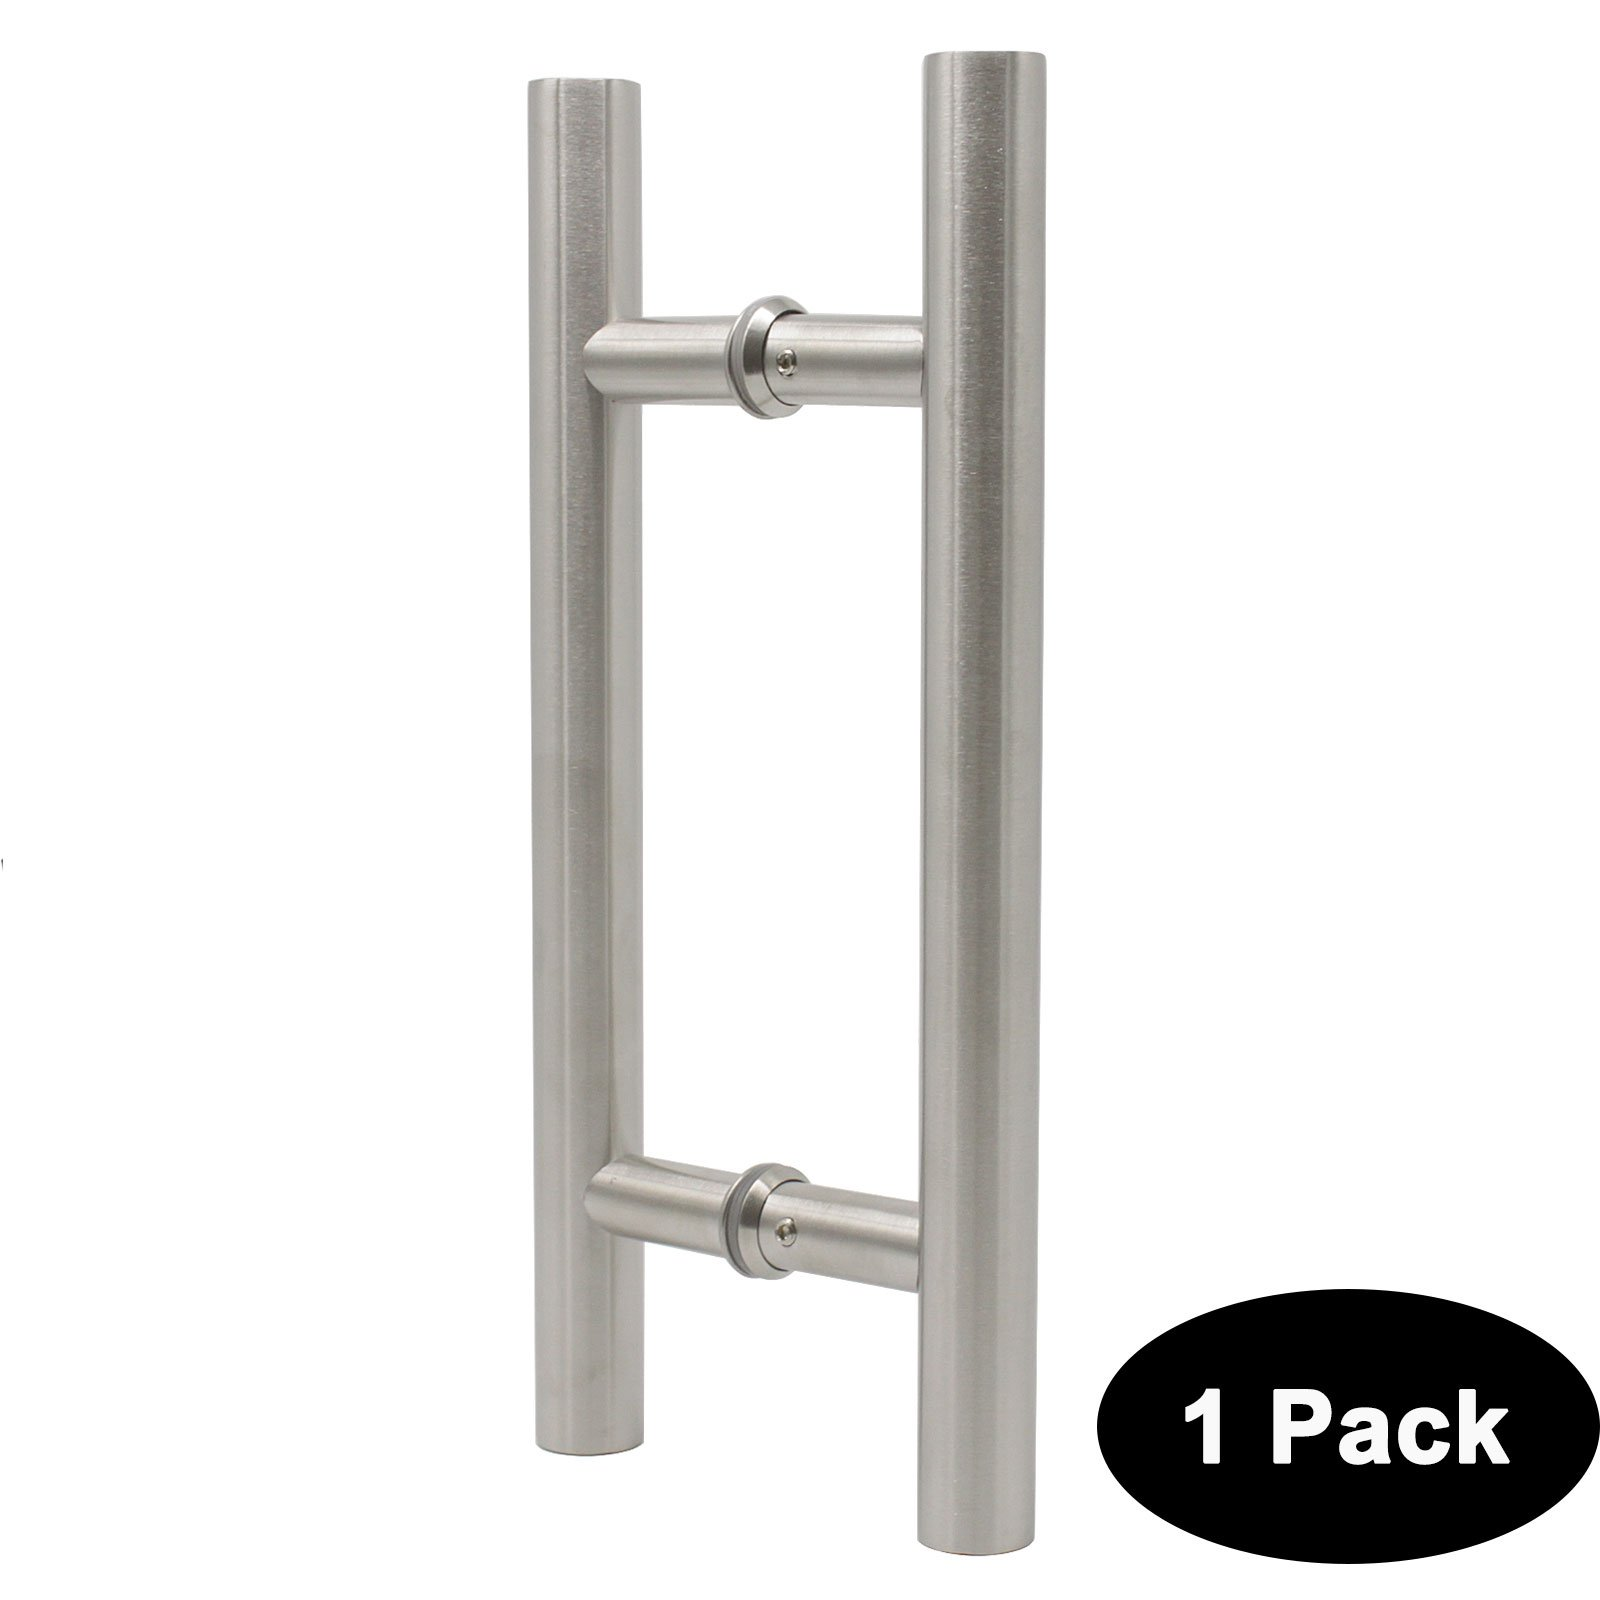 Probrico 1 Pack Gate Door Pull 12'' 305mm Barn Glass Wood Door Handle T Bar Two Sides Large 304 Stainless Steel Heavy Duty Door Pulls Brushed Nickel